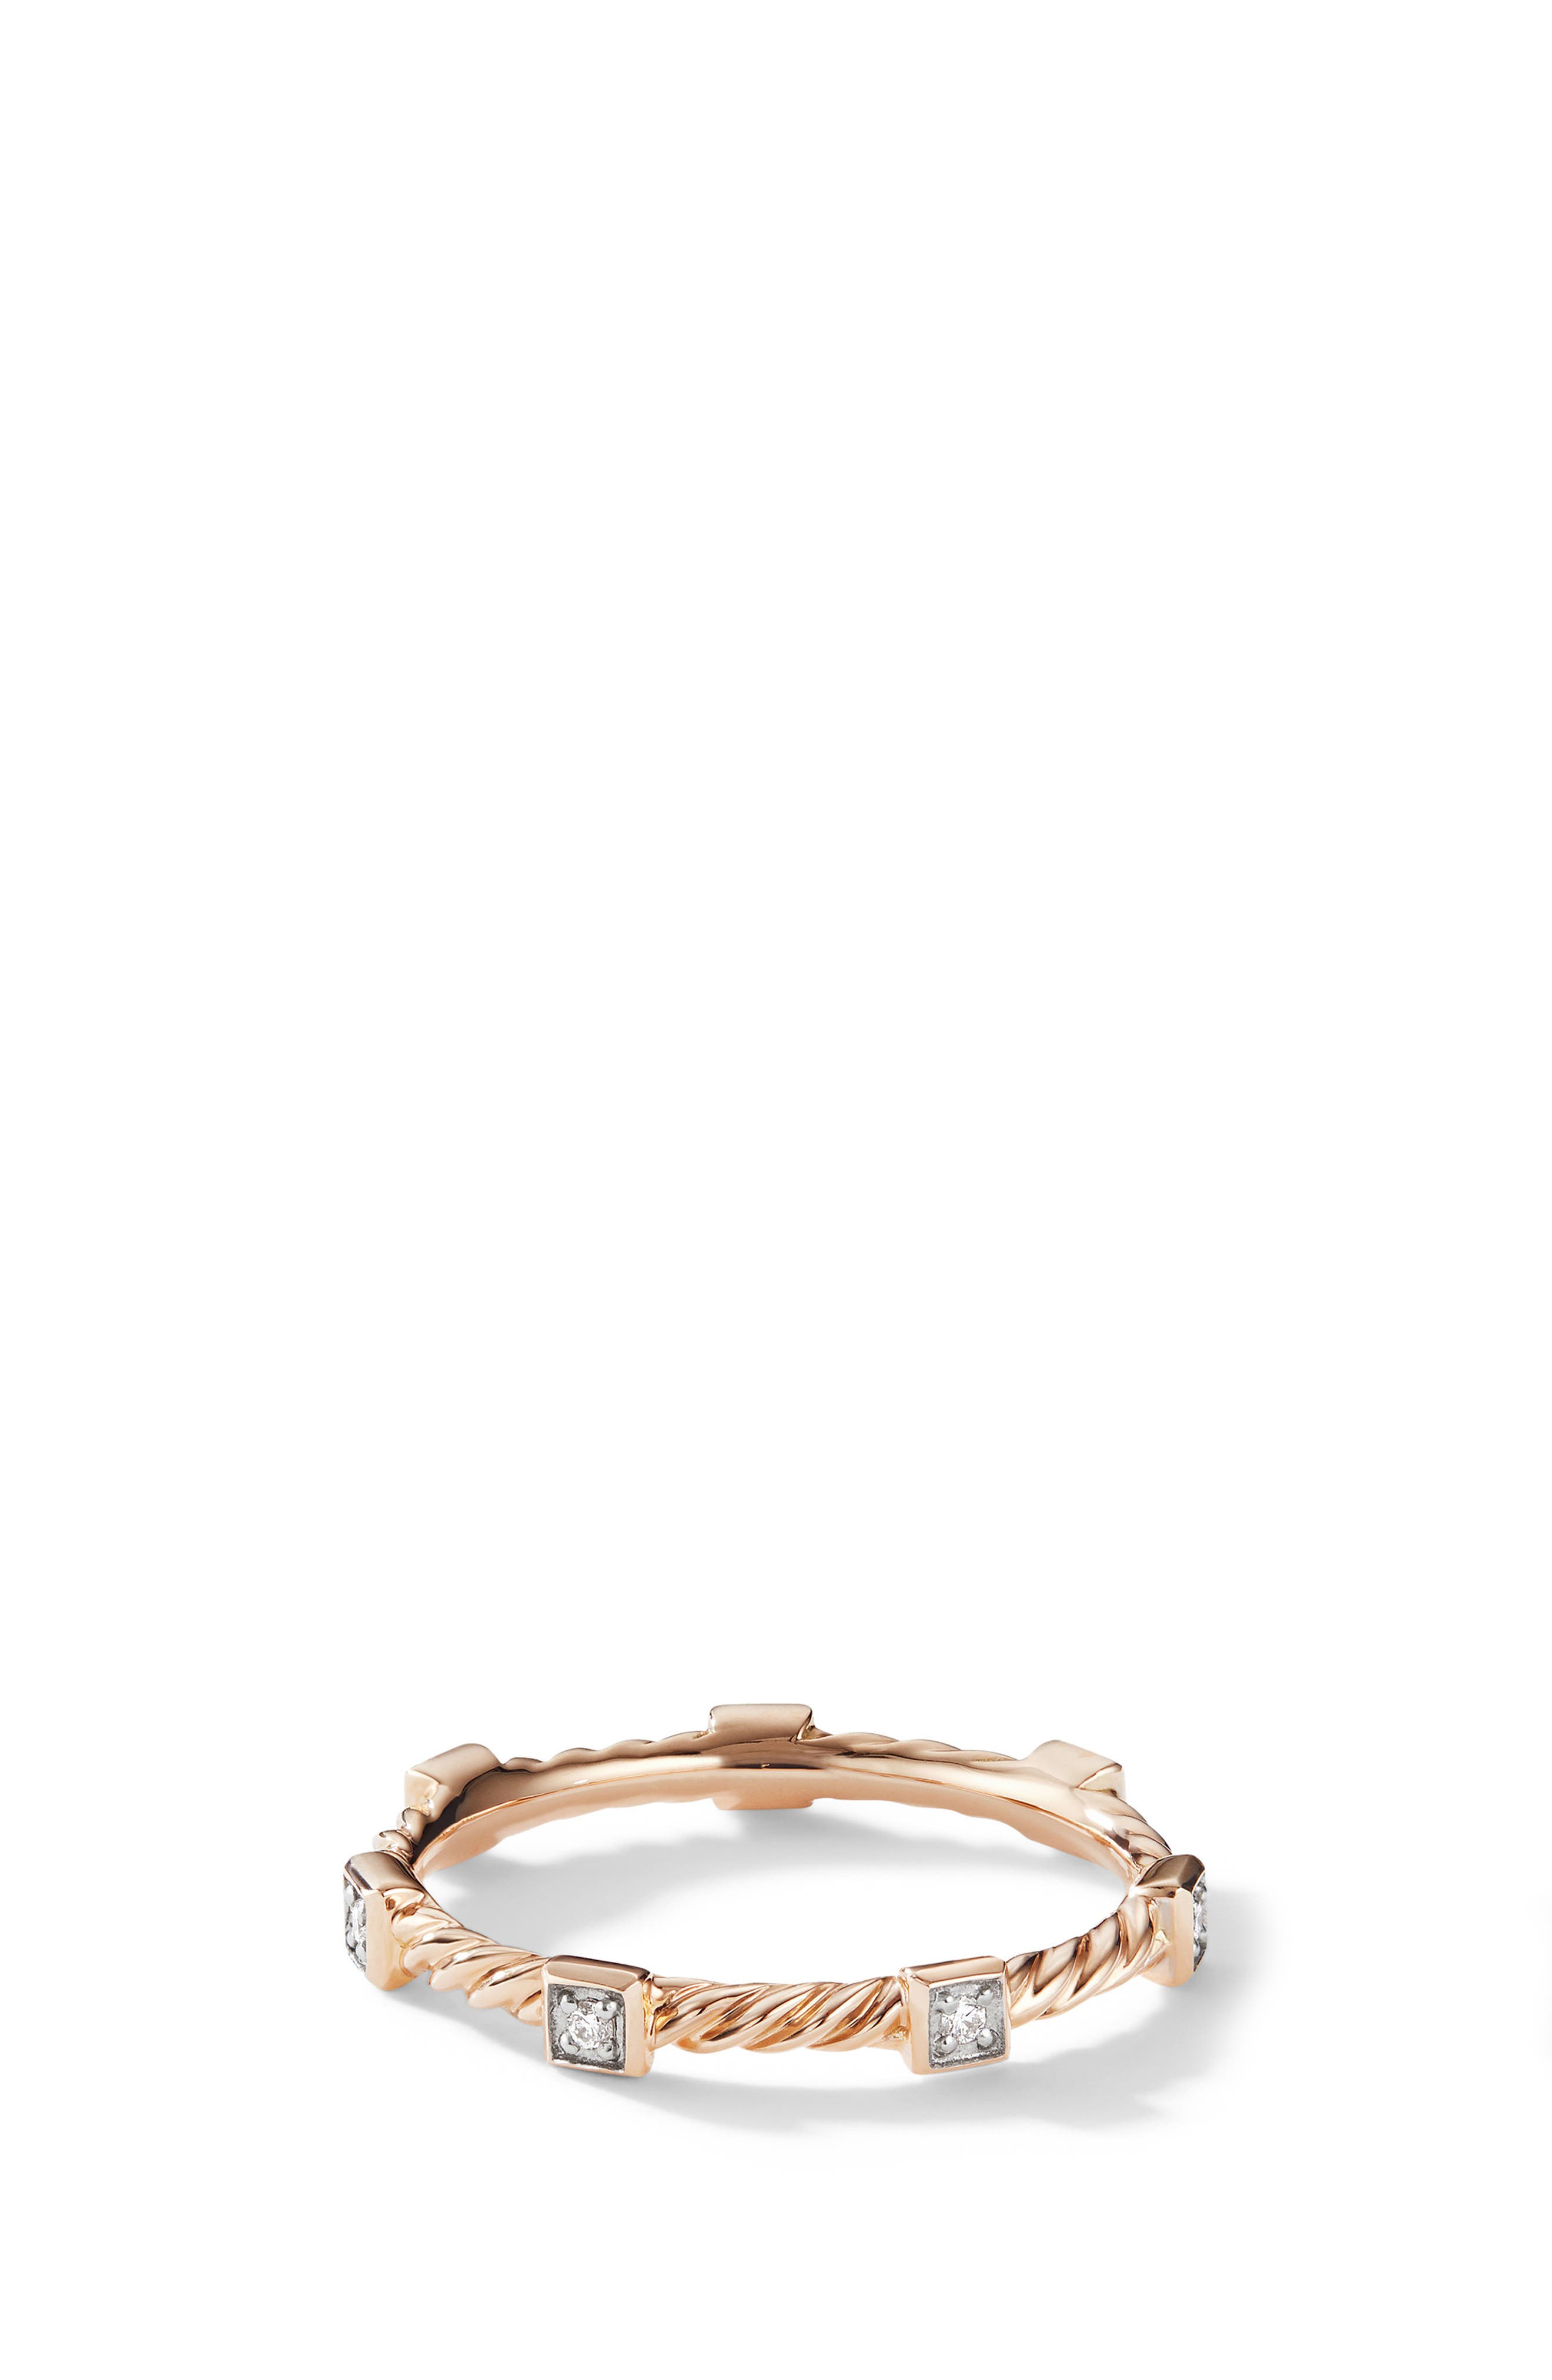 Cable Stack Ring in 18K Rose Gold with Diamonds,                         Main,                         color, ROSE GOLD/ DIAMOND